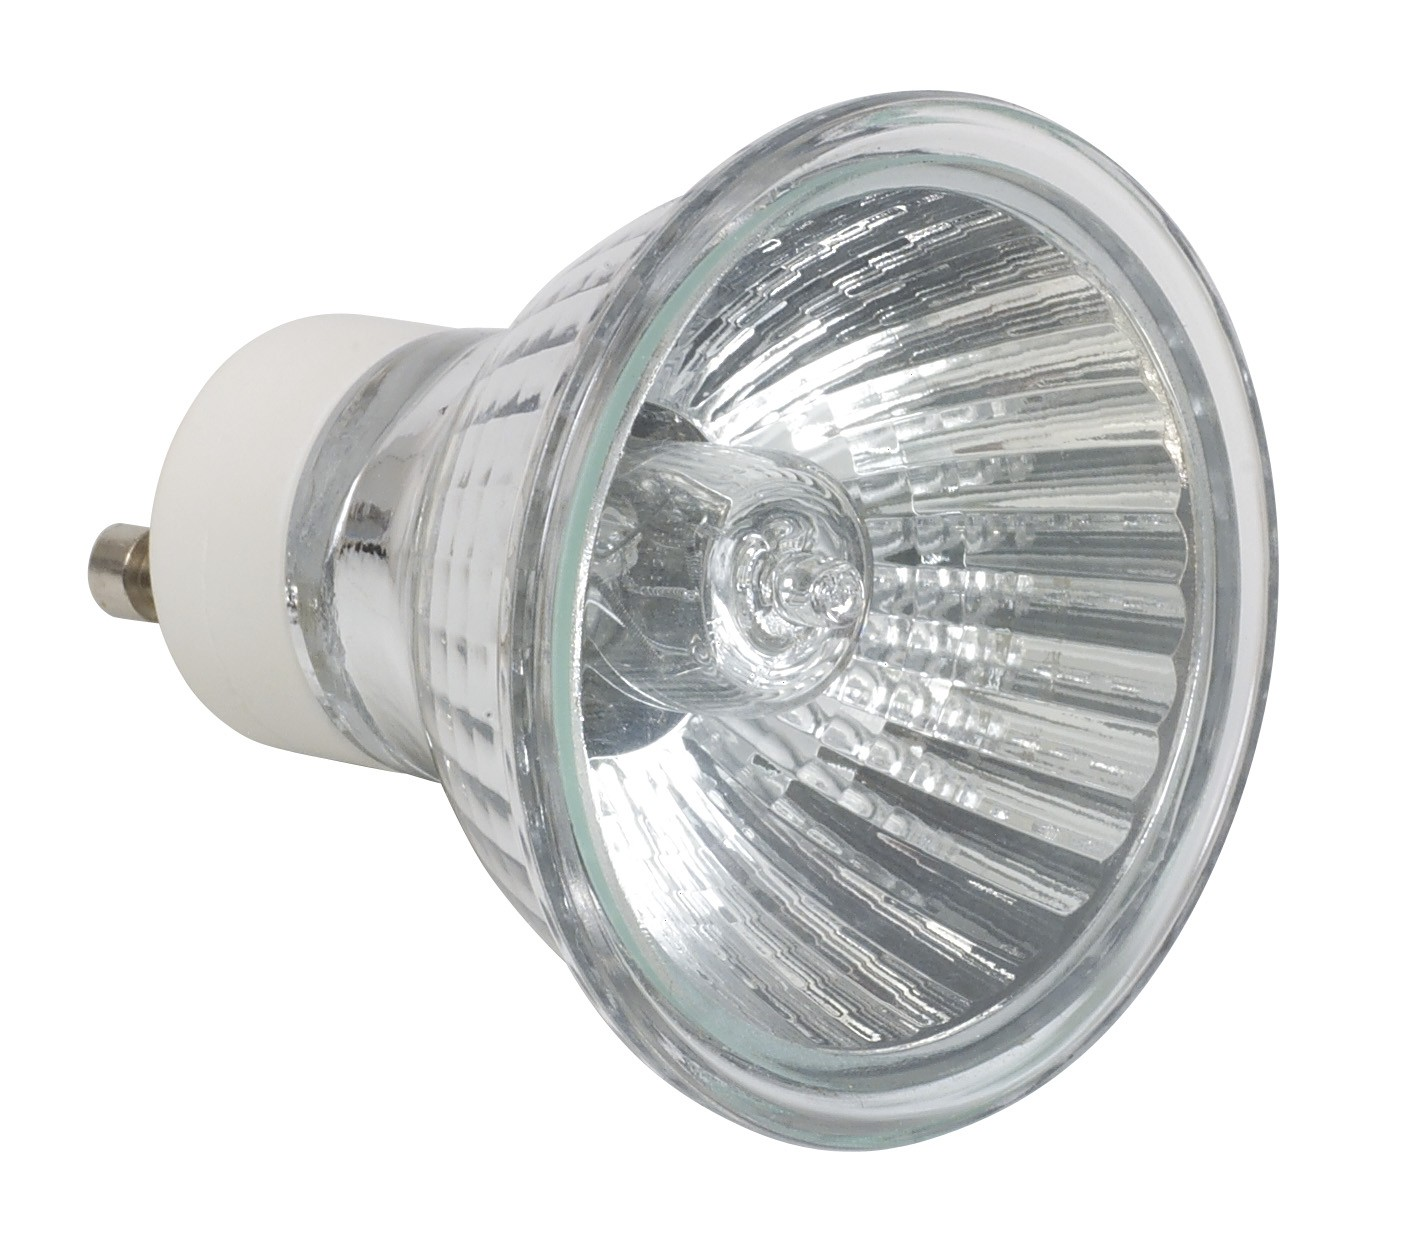 Halogen Gu10 Gu10 Halogen 35watt Lamp Mains